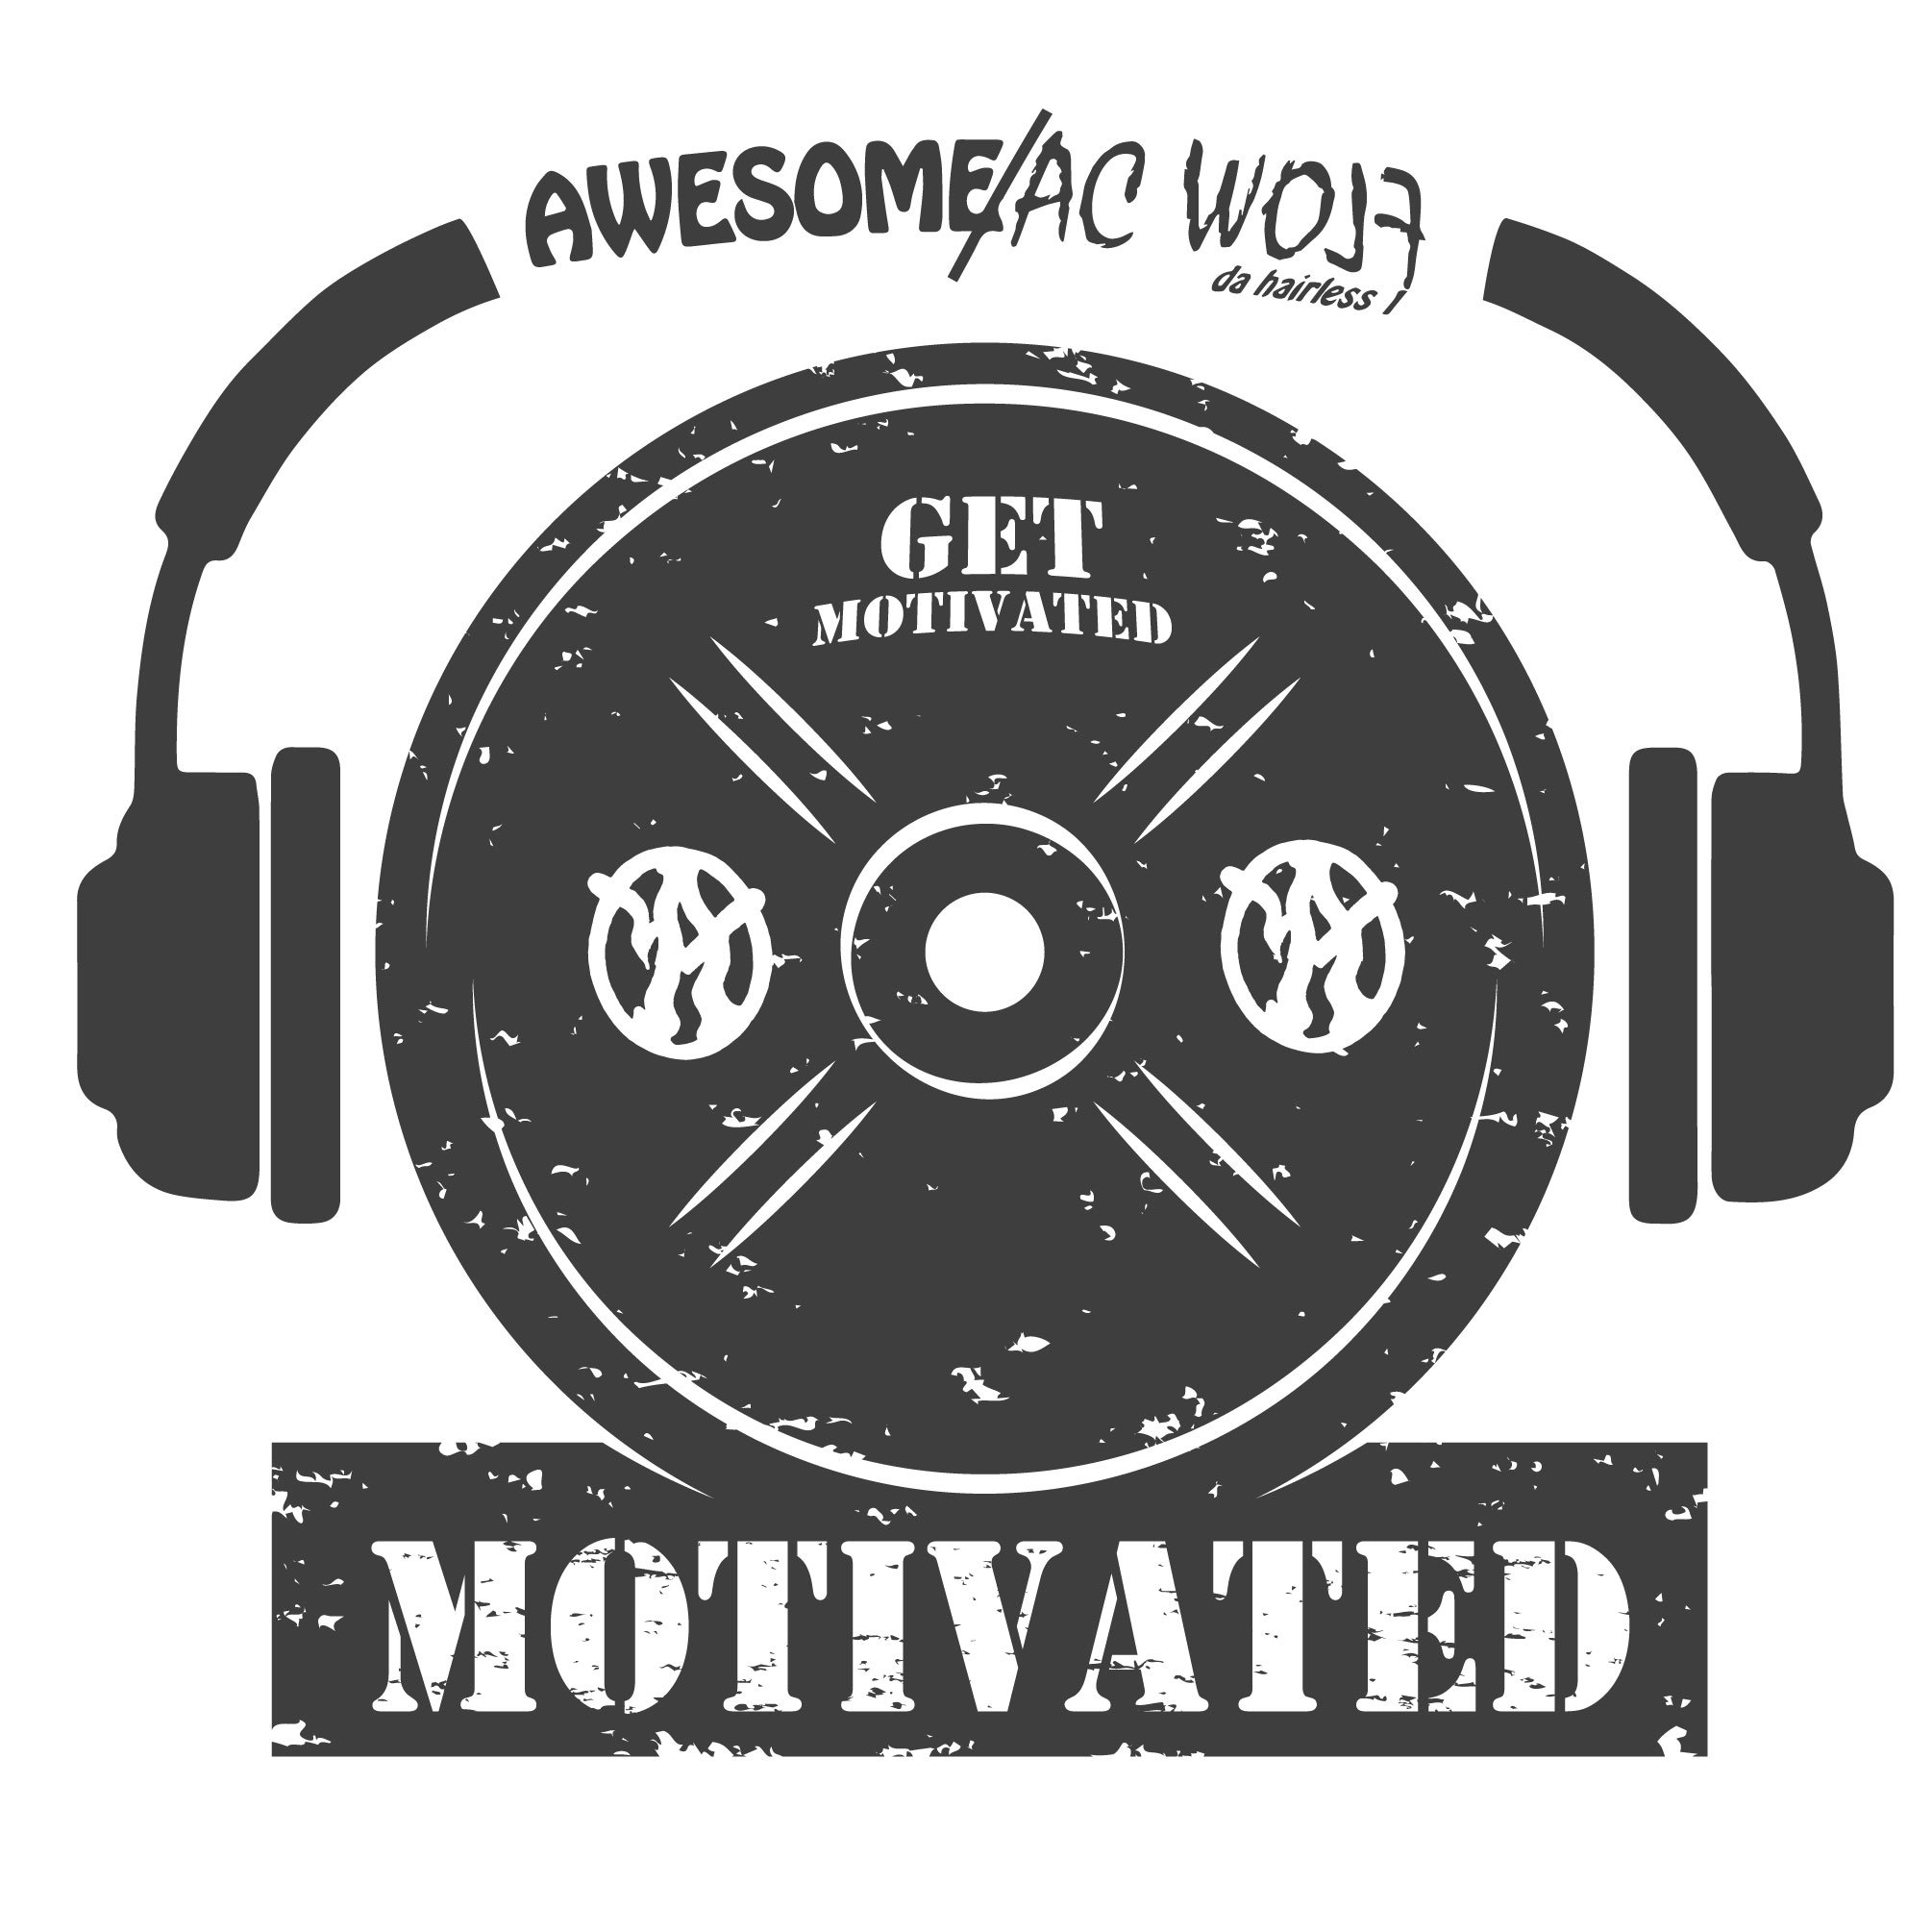 Awesome/AC Wolf Get Motivated logo